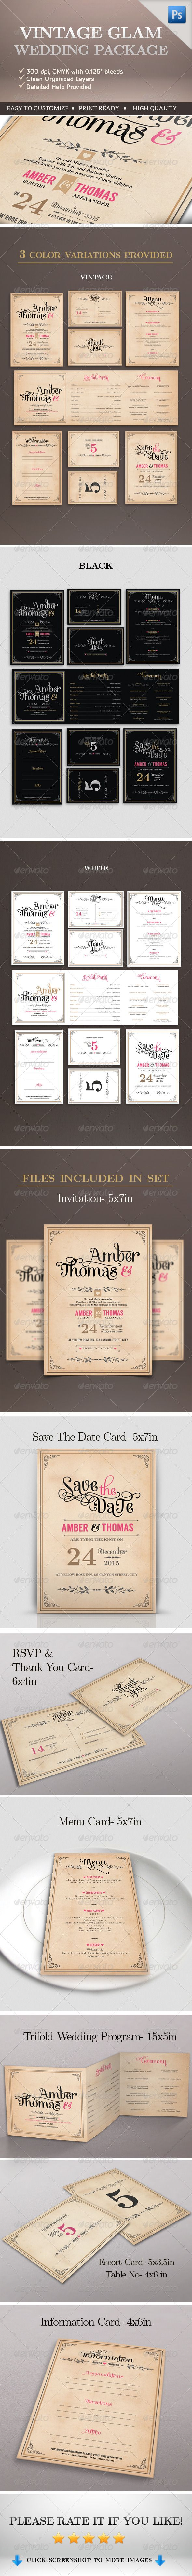 templates for wedding card design%0A Vintage Glam Wedding Package  Invitation TemplatesPsd TemplatesDesign